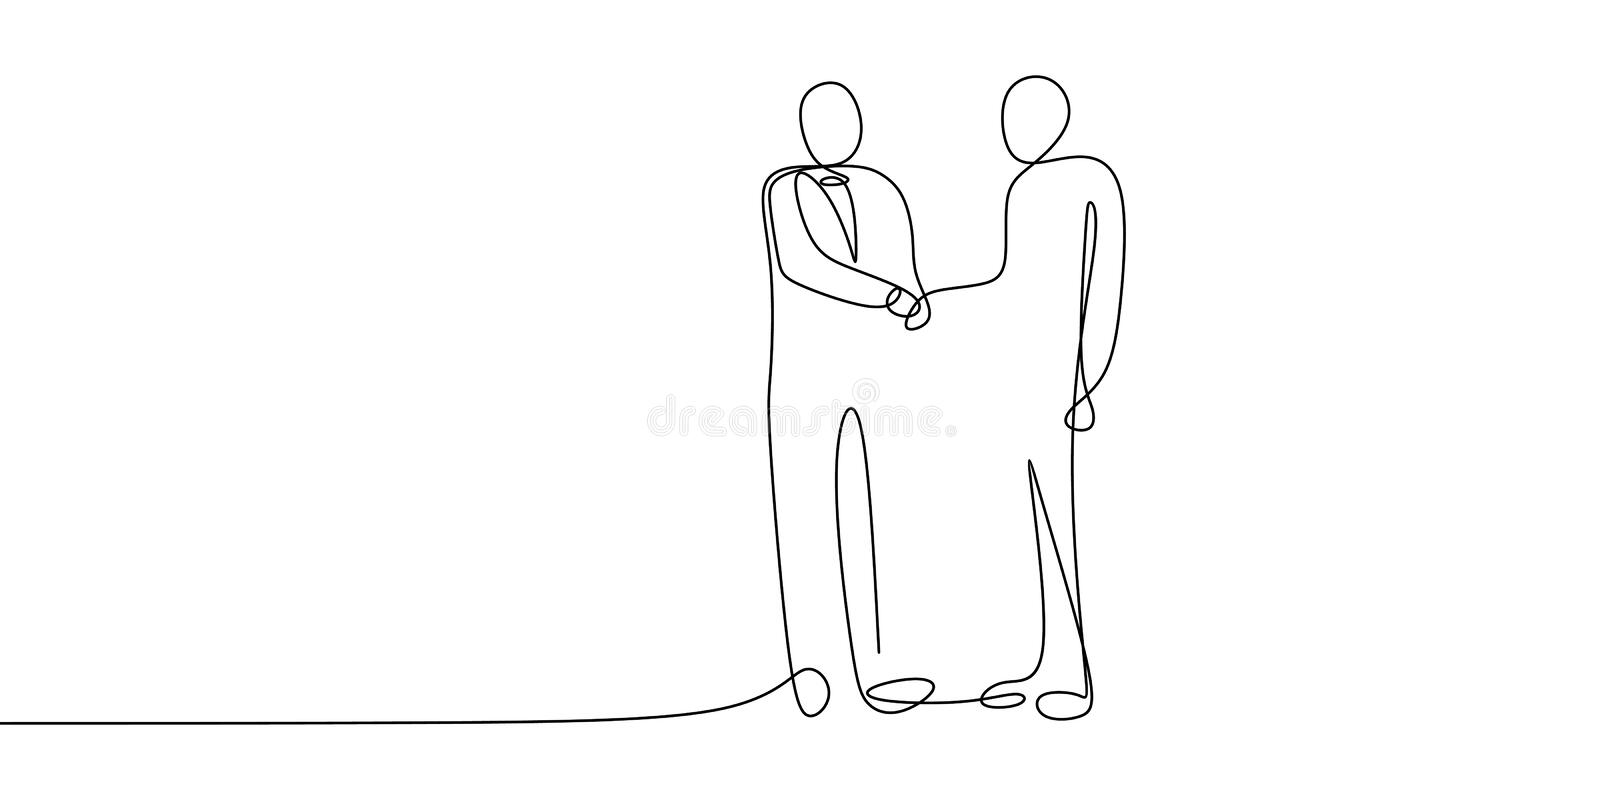 Business meeting concept. Continuous line art drawing of people community with shaking hands vector illustration. Teamwork man outline success isolated walking royalty free illustration